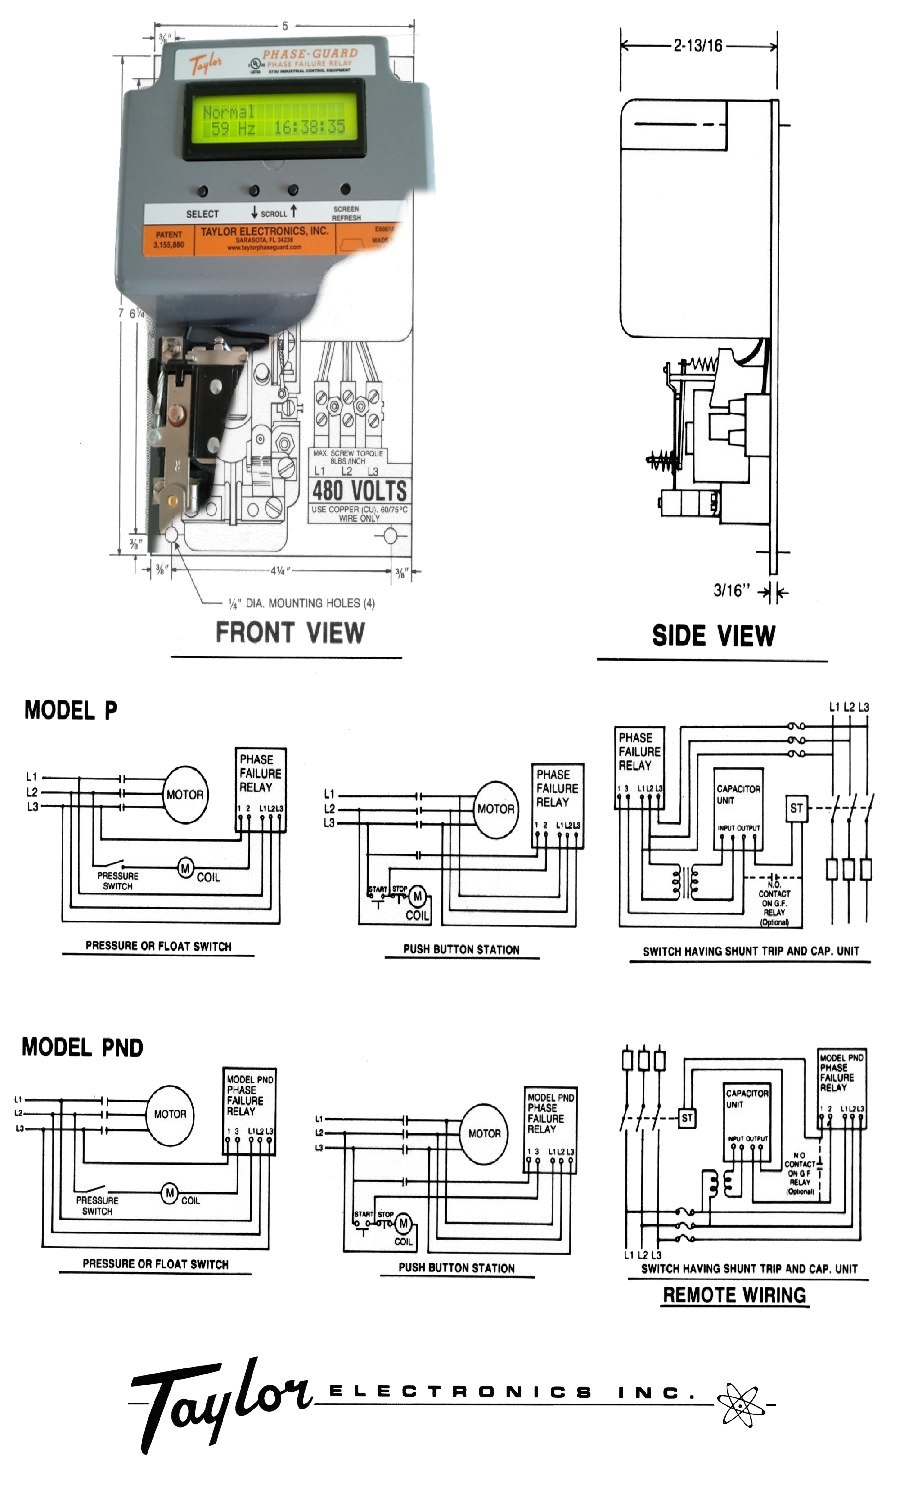 hight resolution of wiring diagram taylor electronics inc taylor ice cream machine wiring diagram taylor wiring diagram